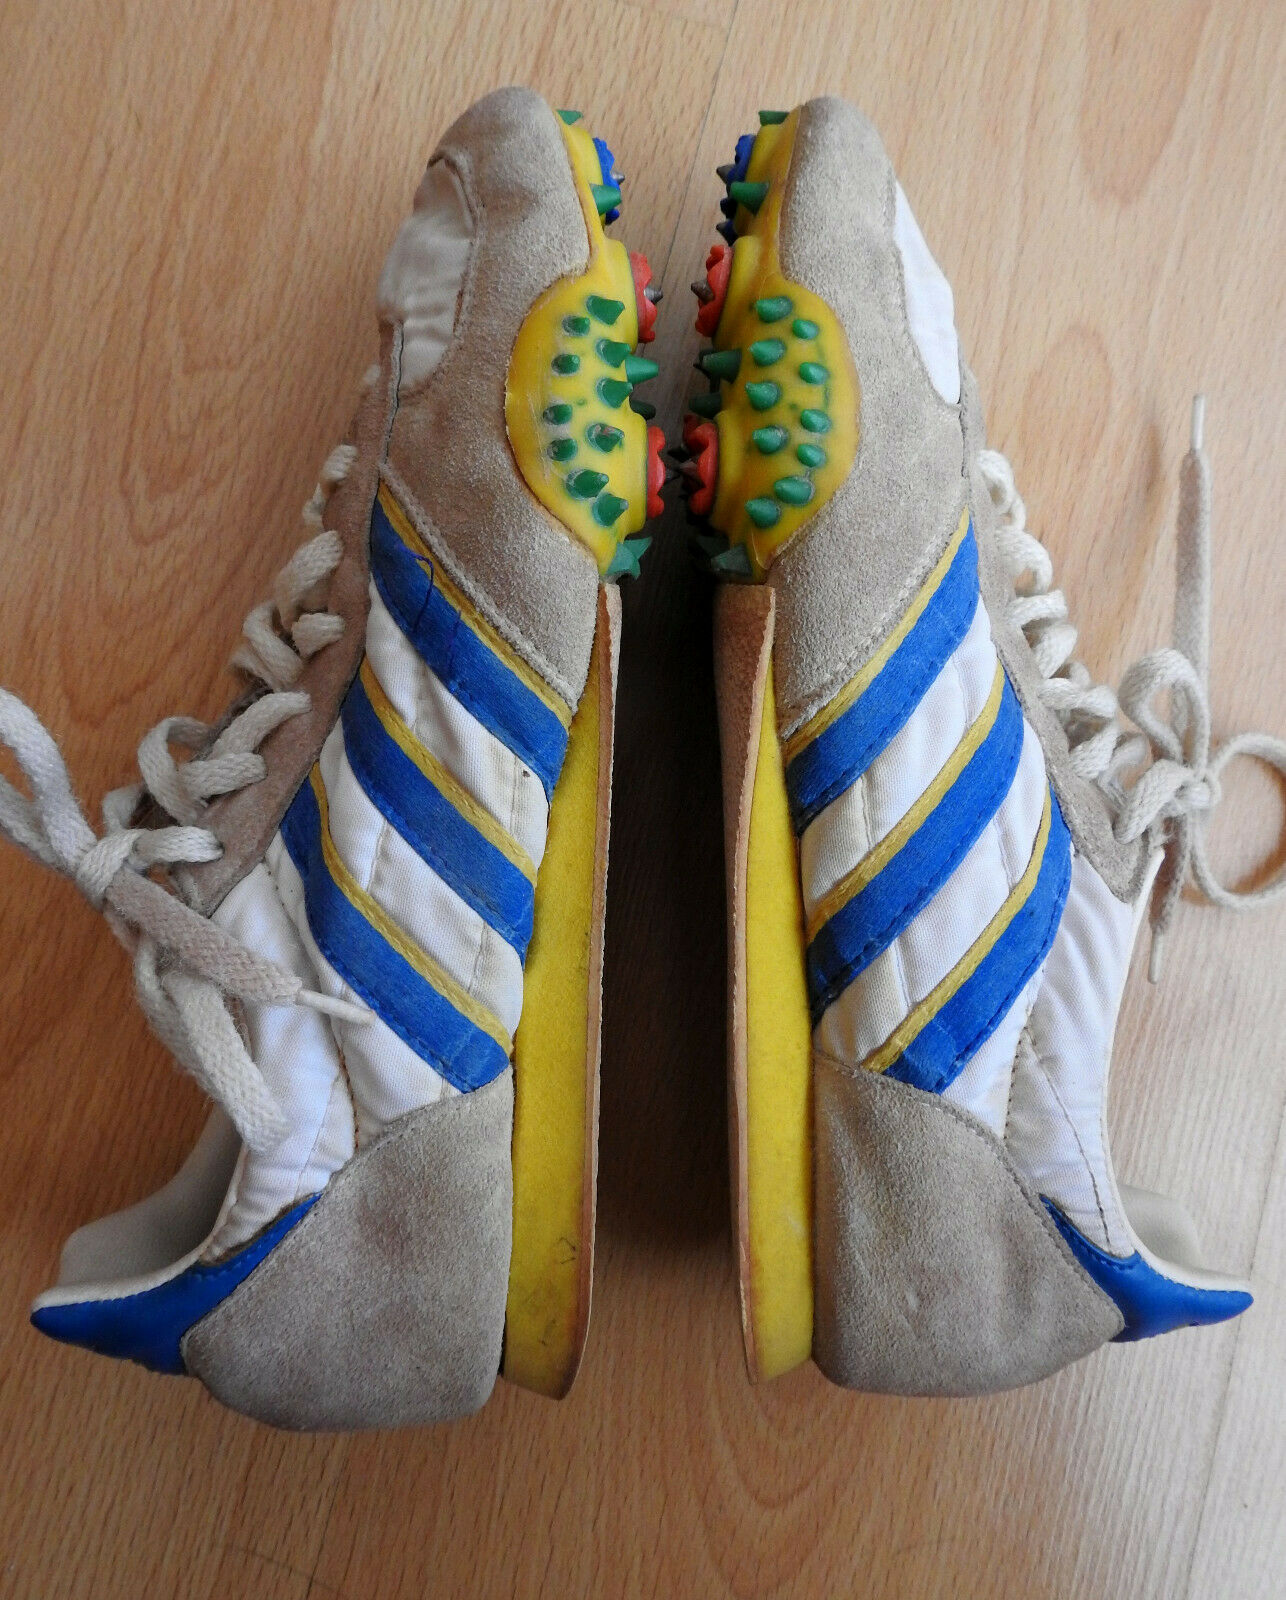 1970's Vintage Adidas Spikes Athletic Track & Field Running shoes Yugoslavia